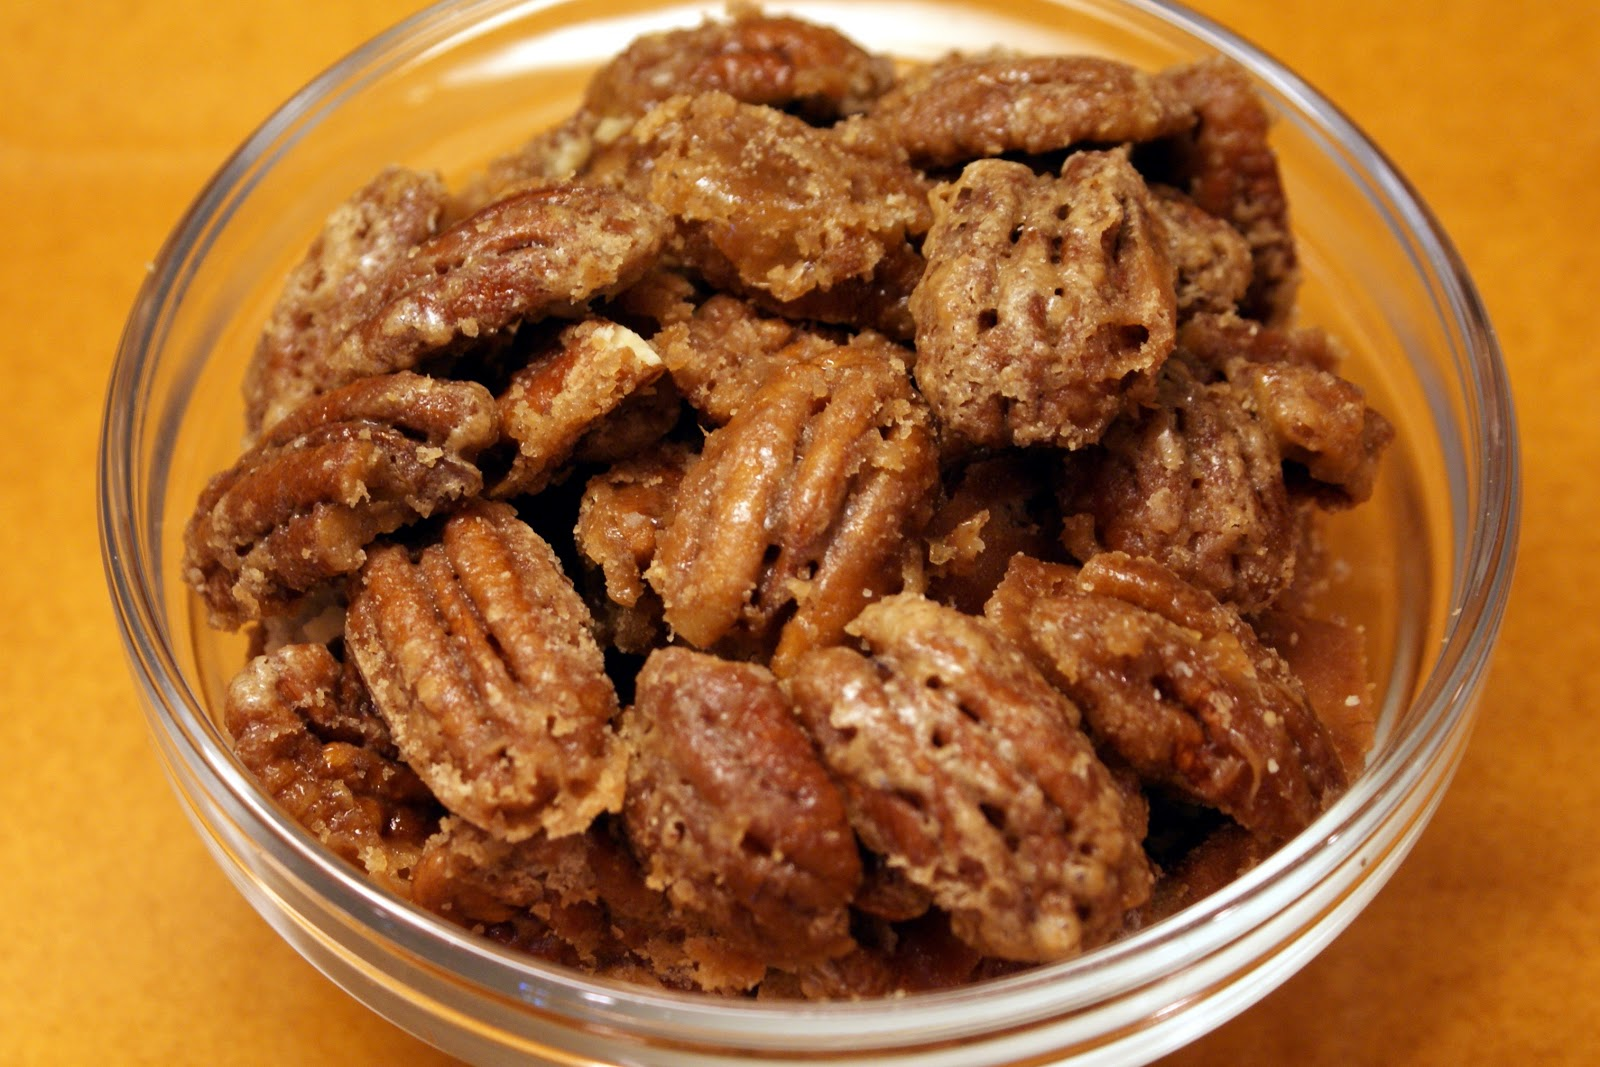 The Baker's Mann: Cheater Pralines, aka Candied Pecans